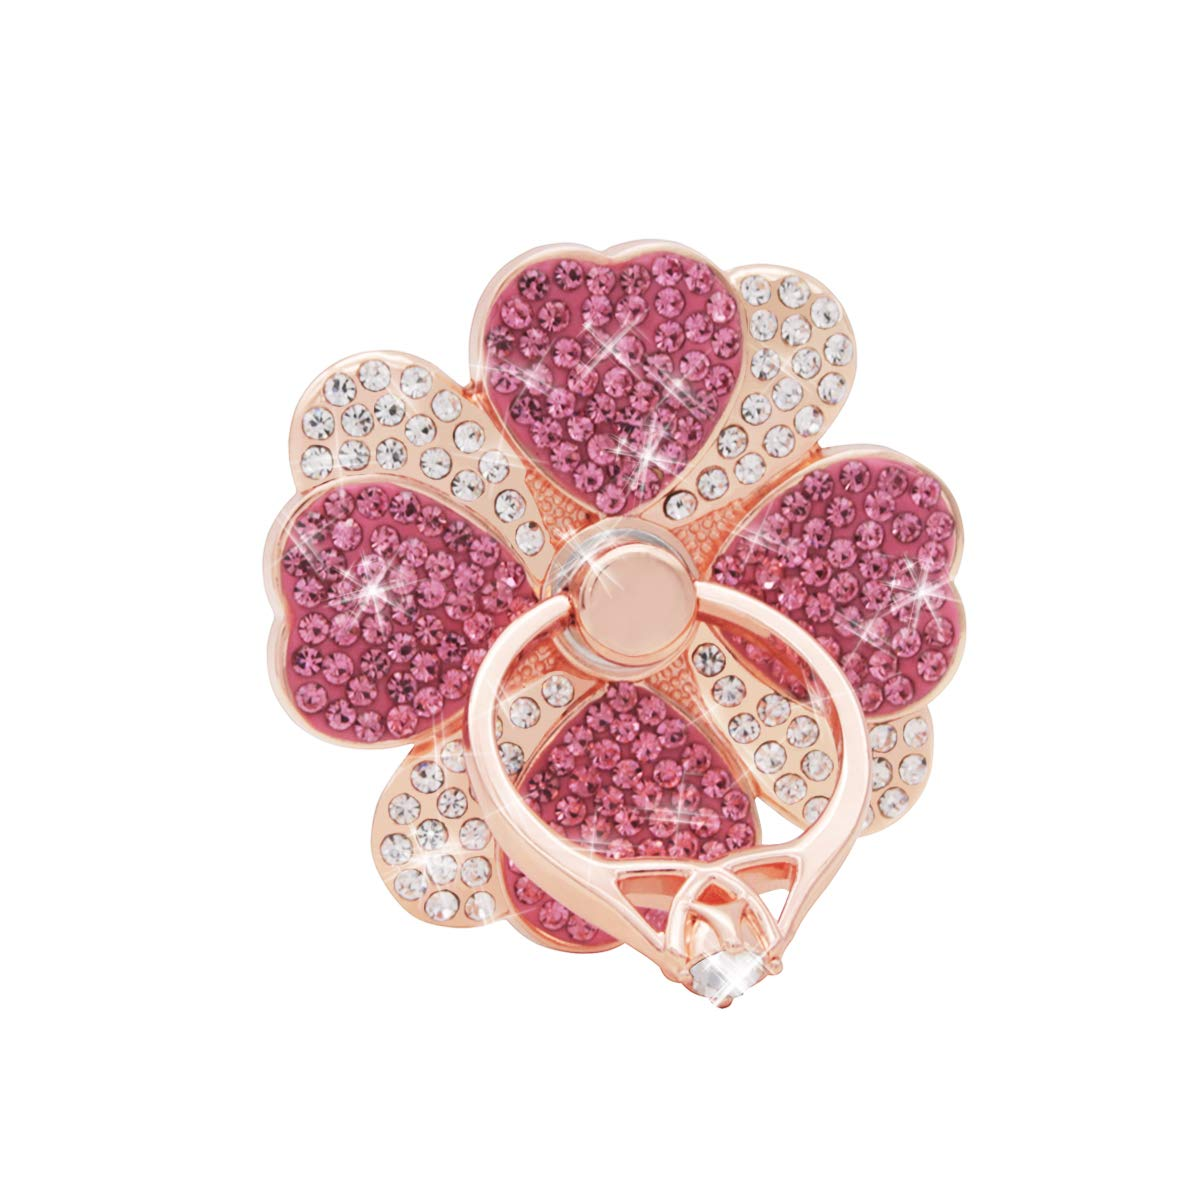 IYOYI Bling Rhinestone Cell Phone Ring Stand 360° Rotation Finger Grip Crystals Metal Holder Romantic Heart Petal Flower Mount for iPhone 11 Pro Xs Max XR X 8 7 6 6s Plus Samsung Galaxy and More